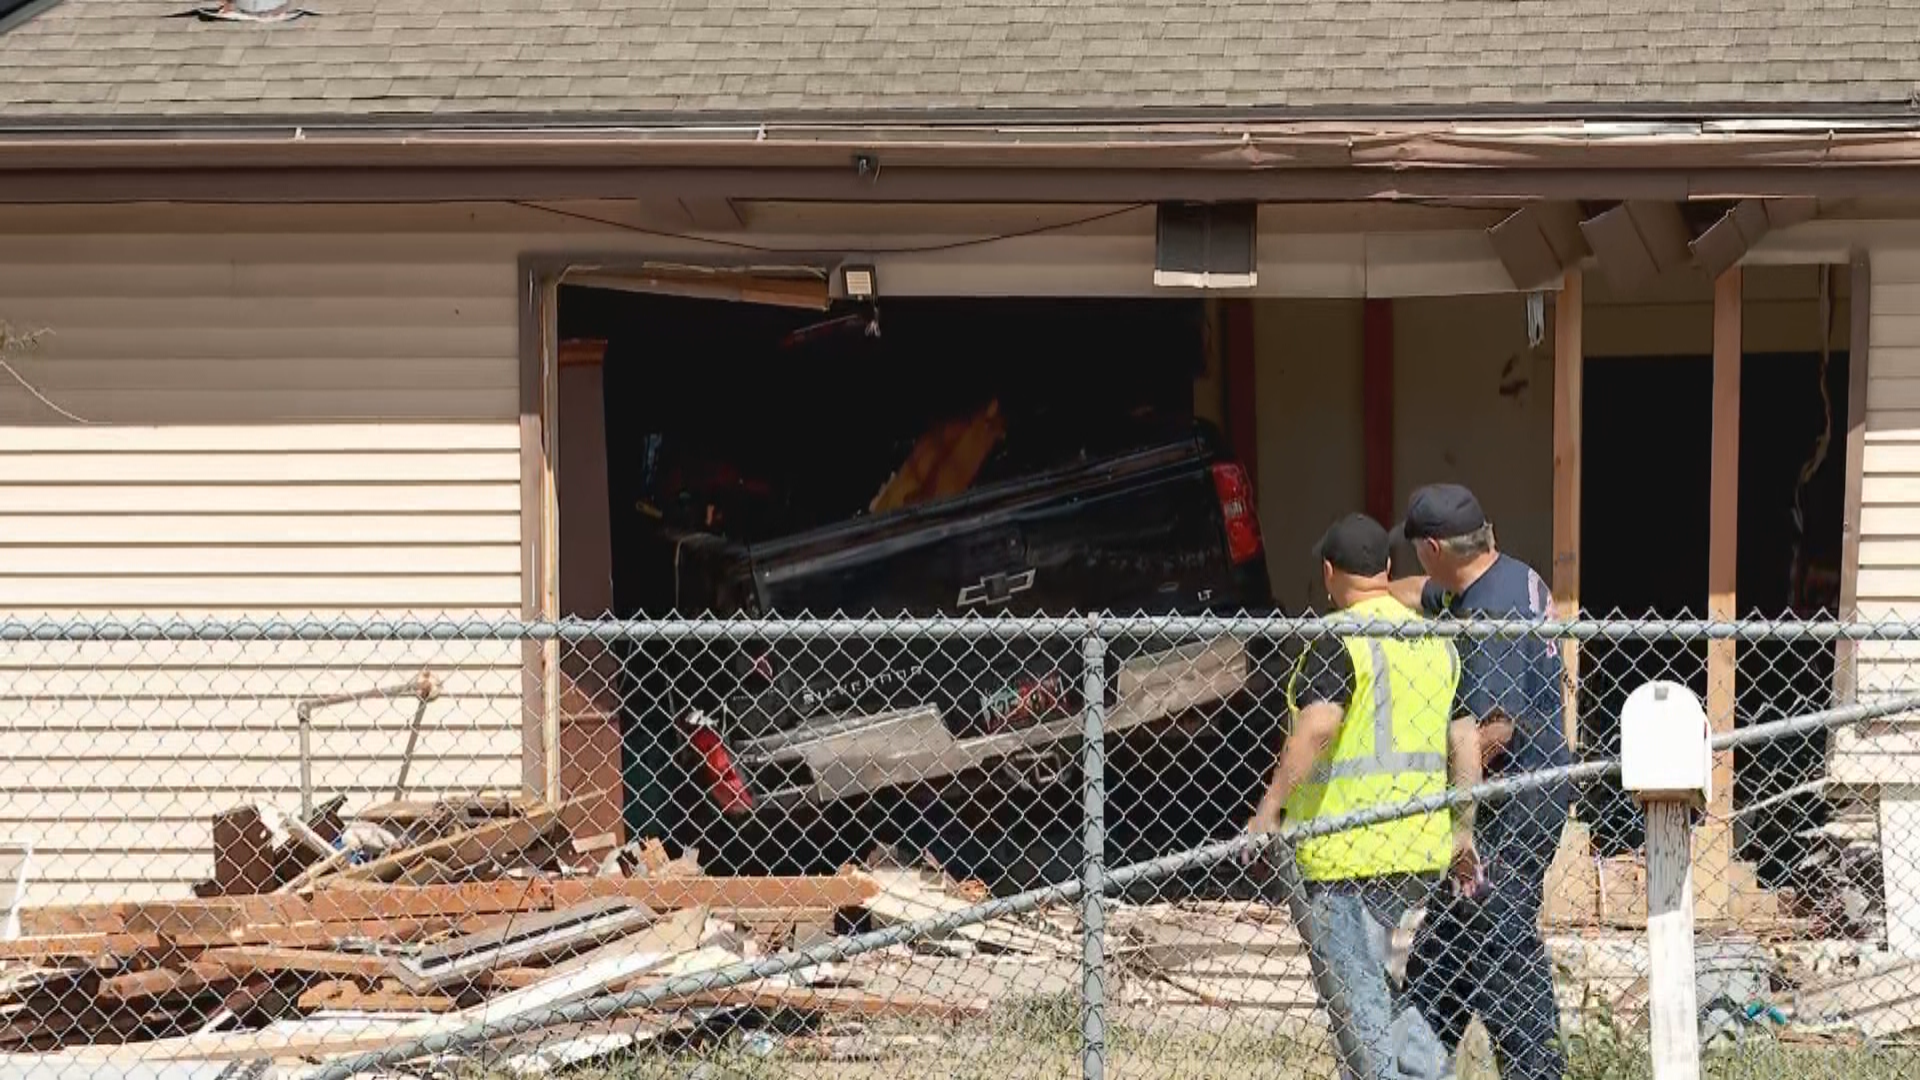 A child was seriously injured when a truck smashed through a home in South Salt Lake on Friday, July 3, 2020. (Photo: Mark Less / KUTV)